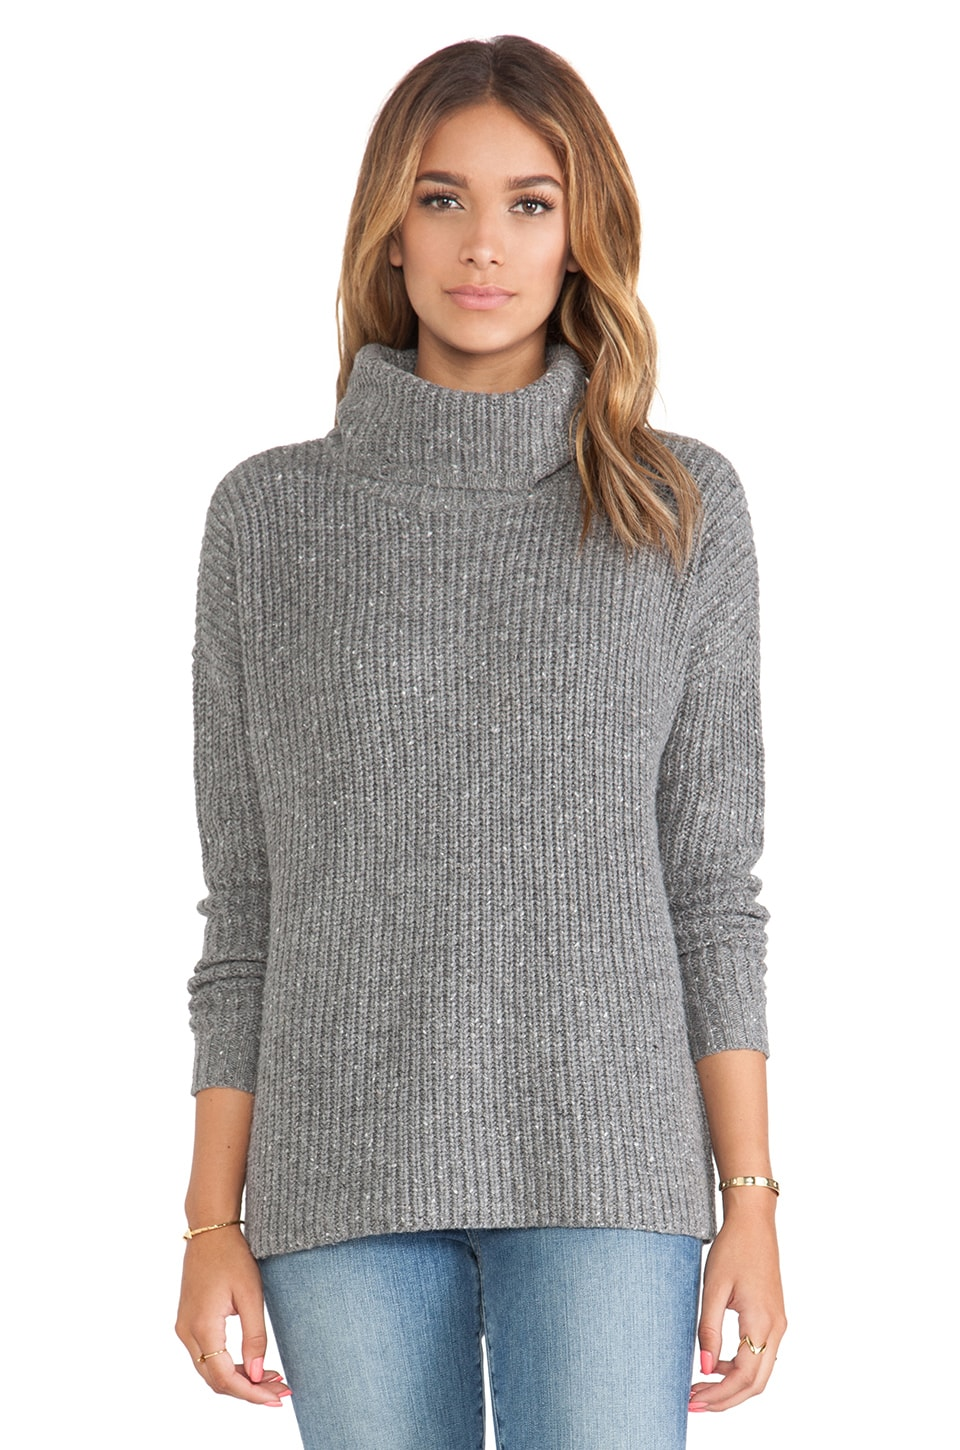 Soft Joie Lynfall Sweater in Dark Heather Grey